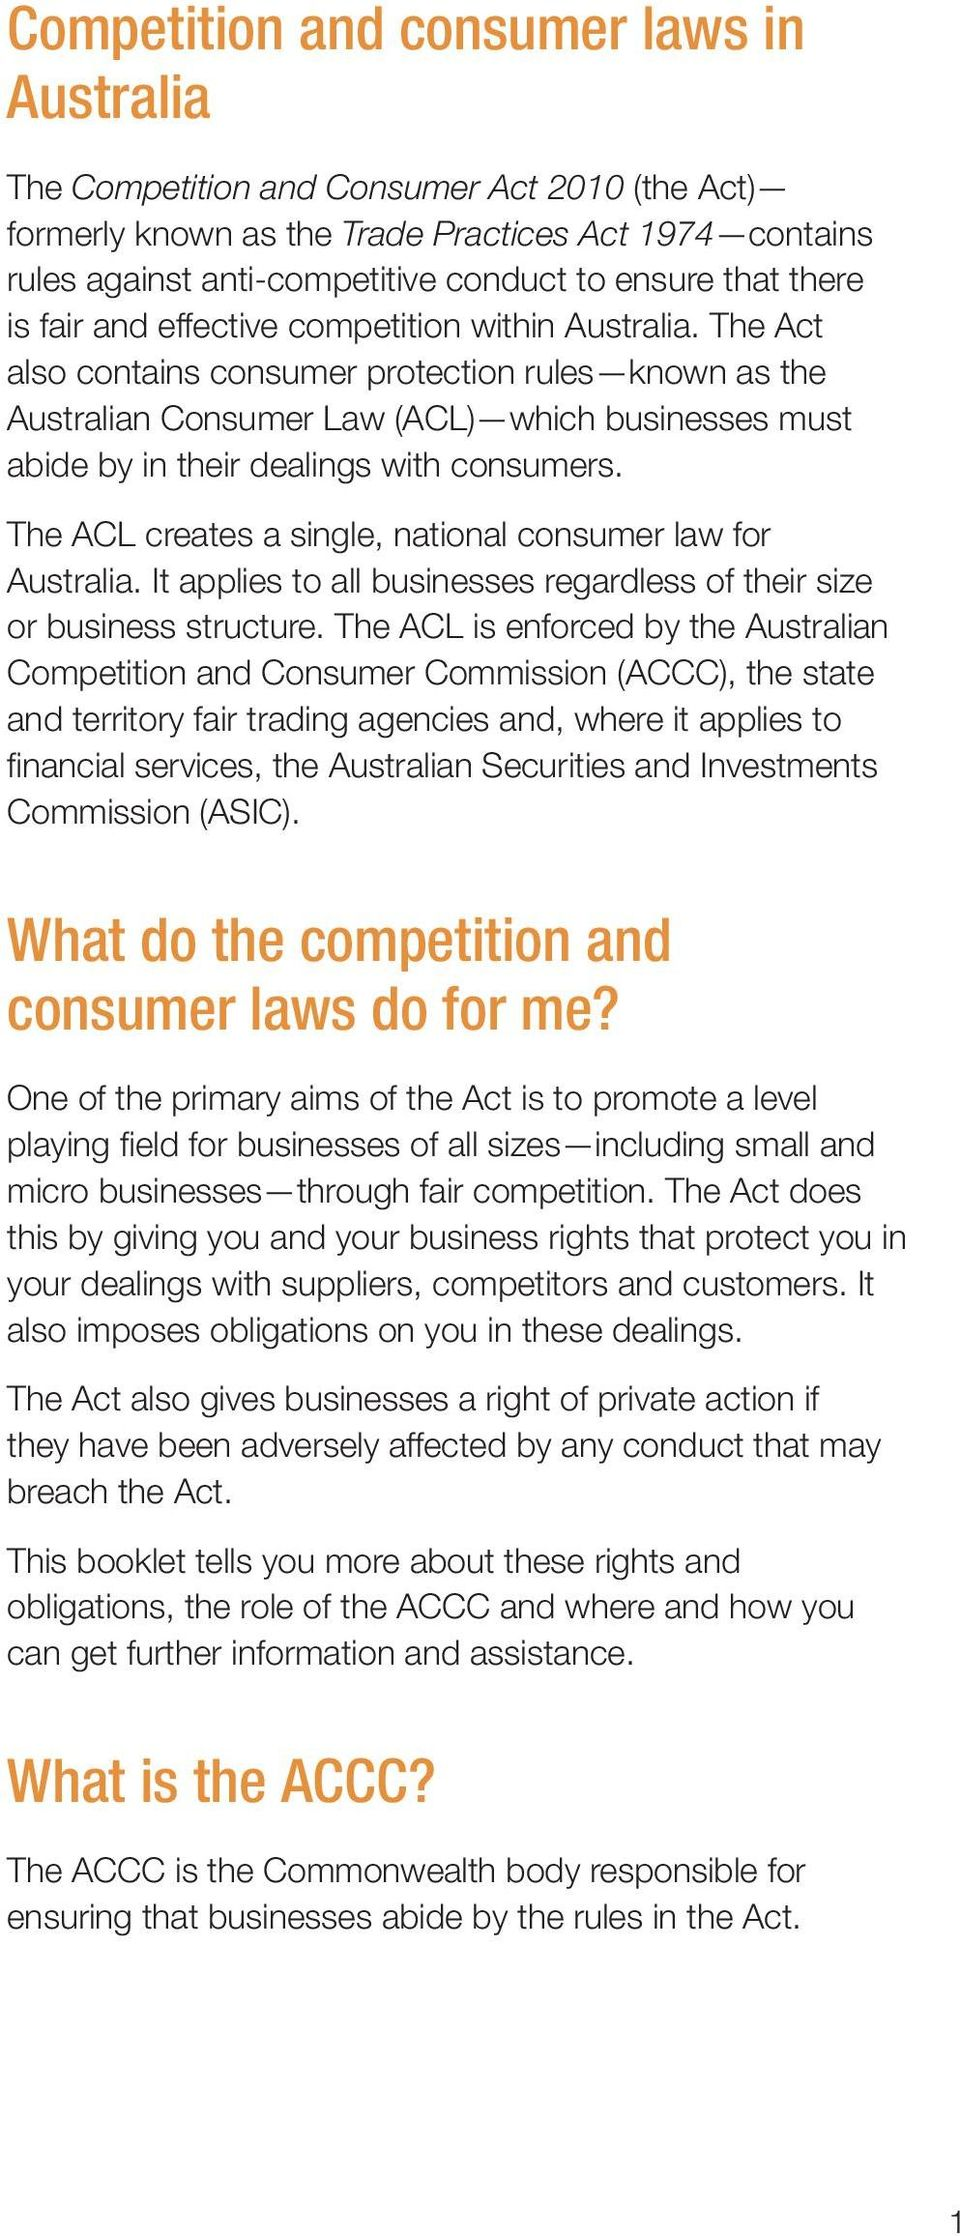 The Act also contains consumer protection rules known as the Australian Consumer Law (ACL) which businesses must abide by in their dealings with consumers.